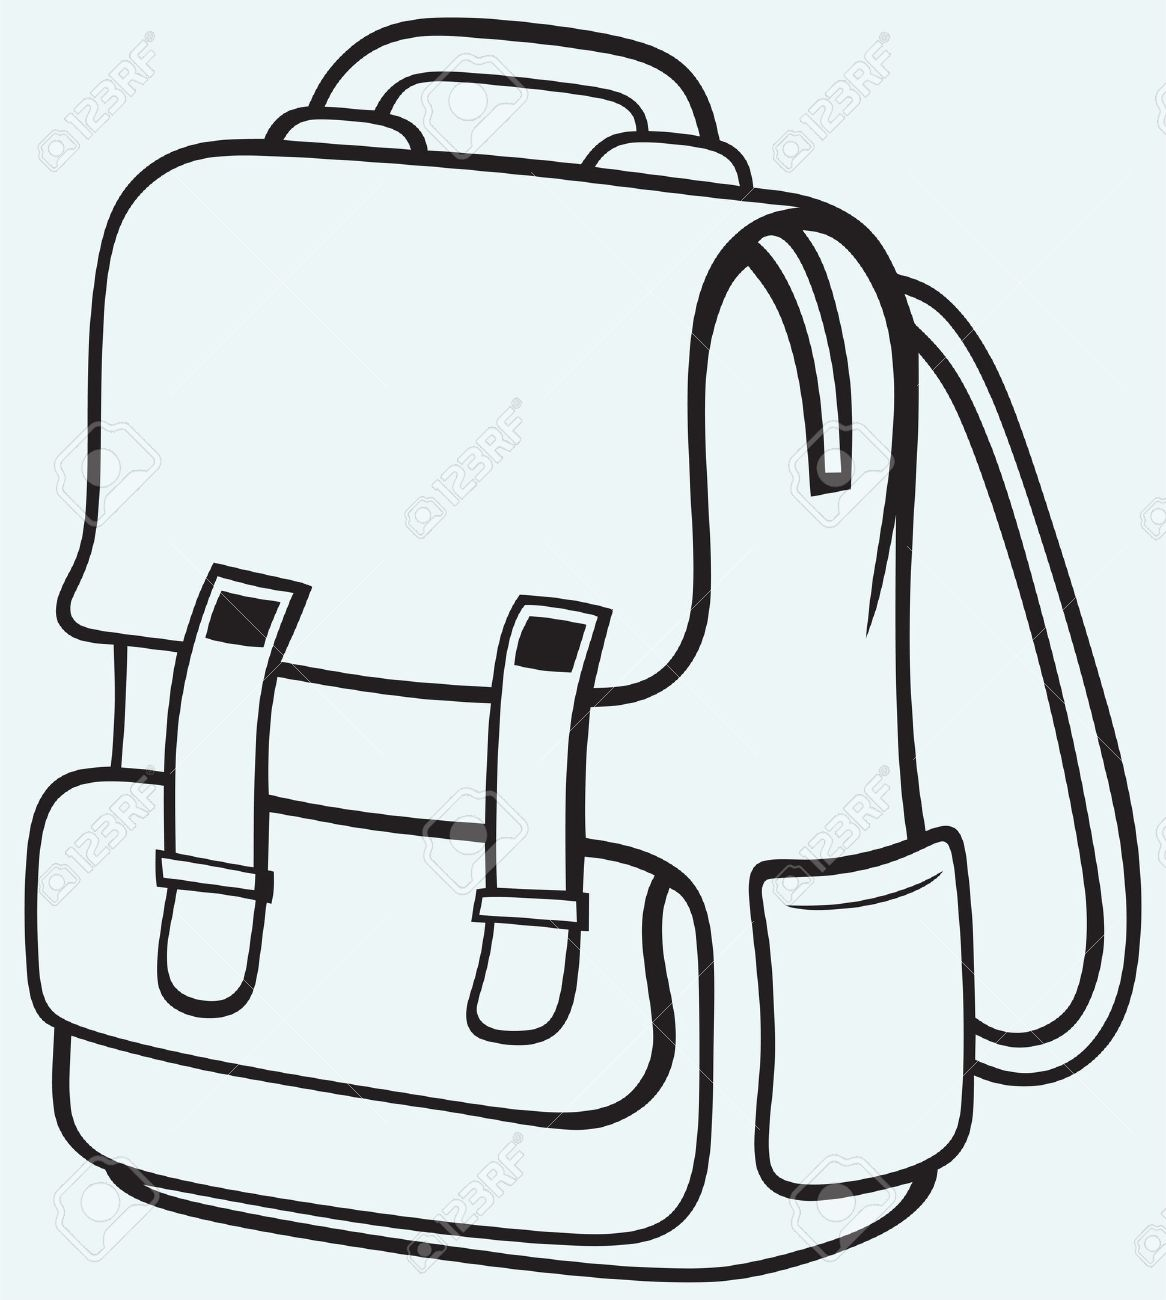 A School Bag Clipart.